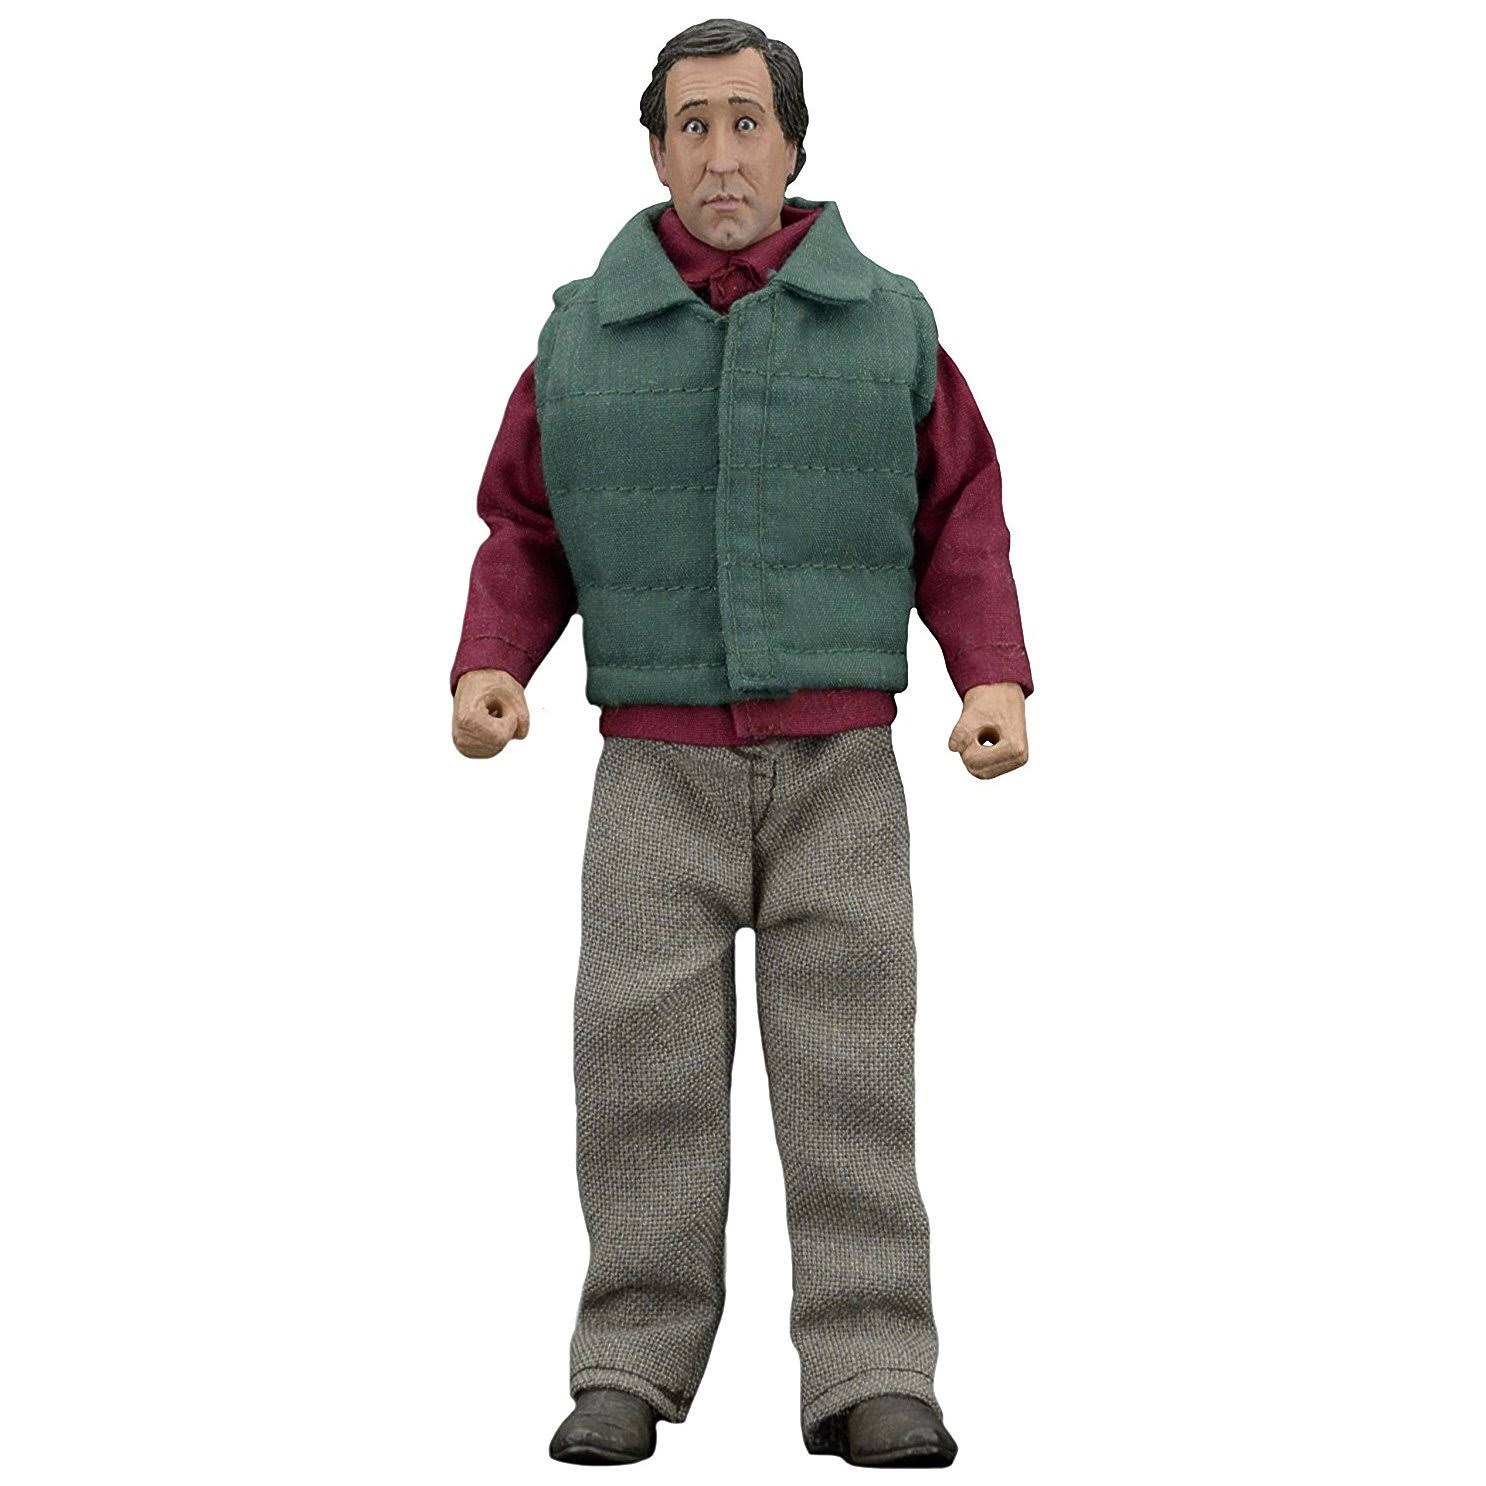 Neca National Lampoon's Christmas Vacation Clothed Action Figure - Chainsaw Clark, 8""